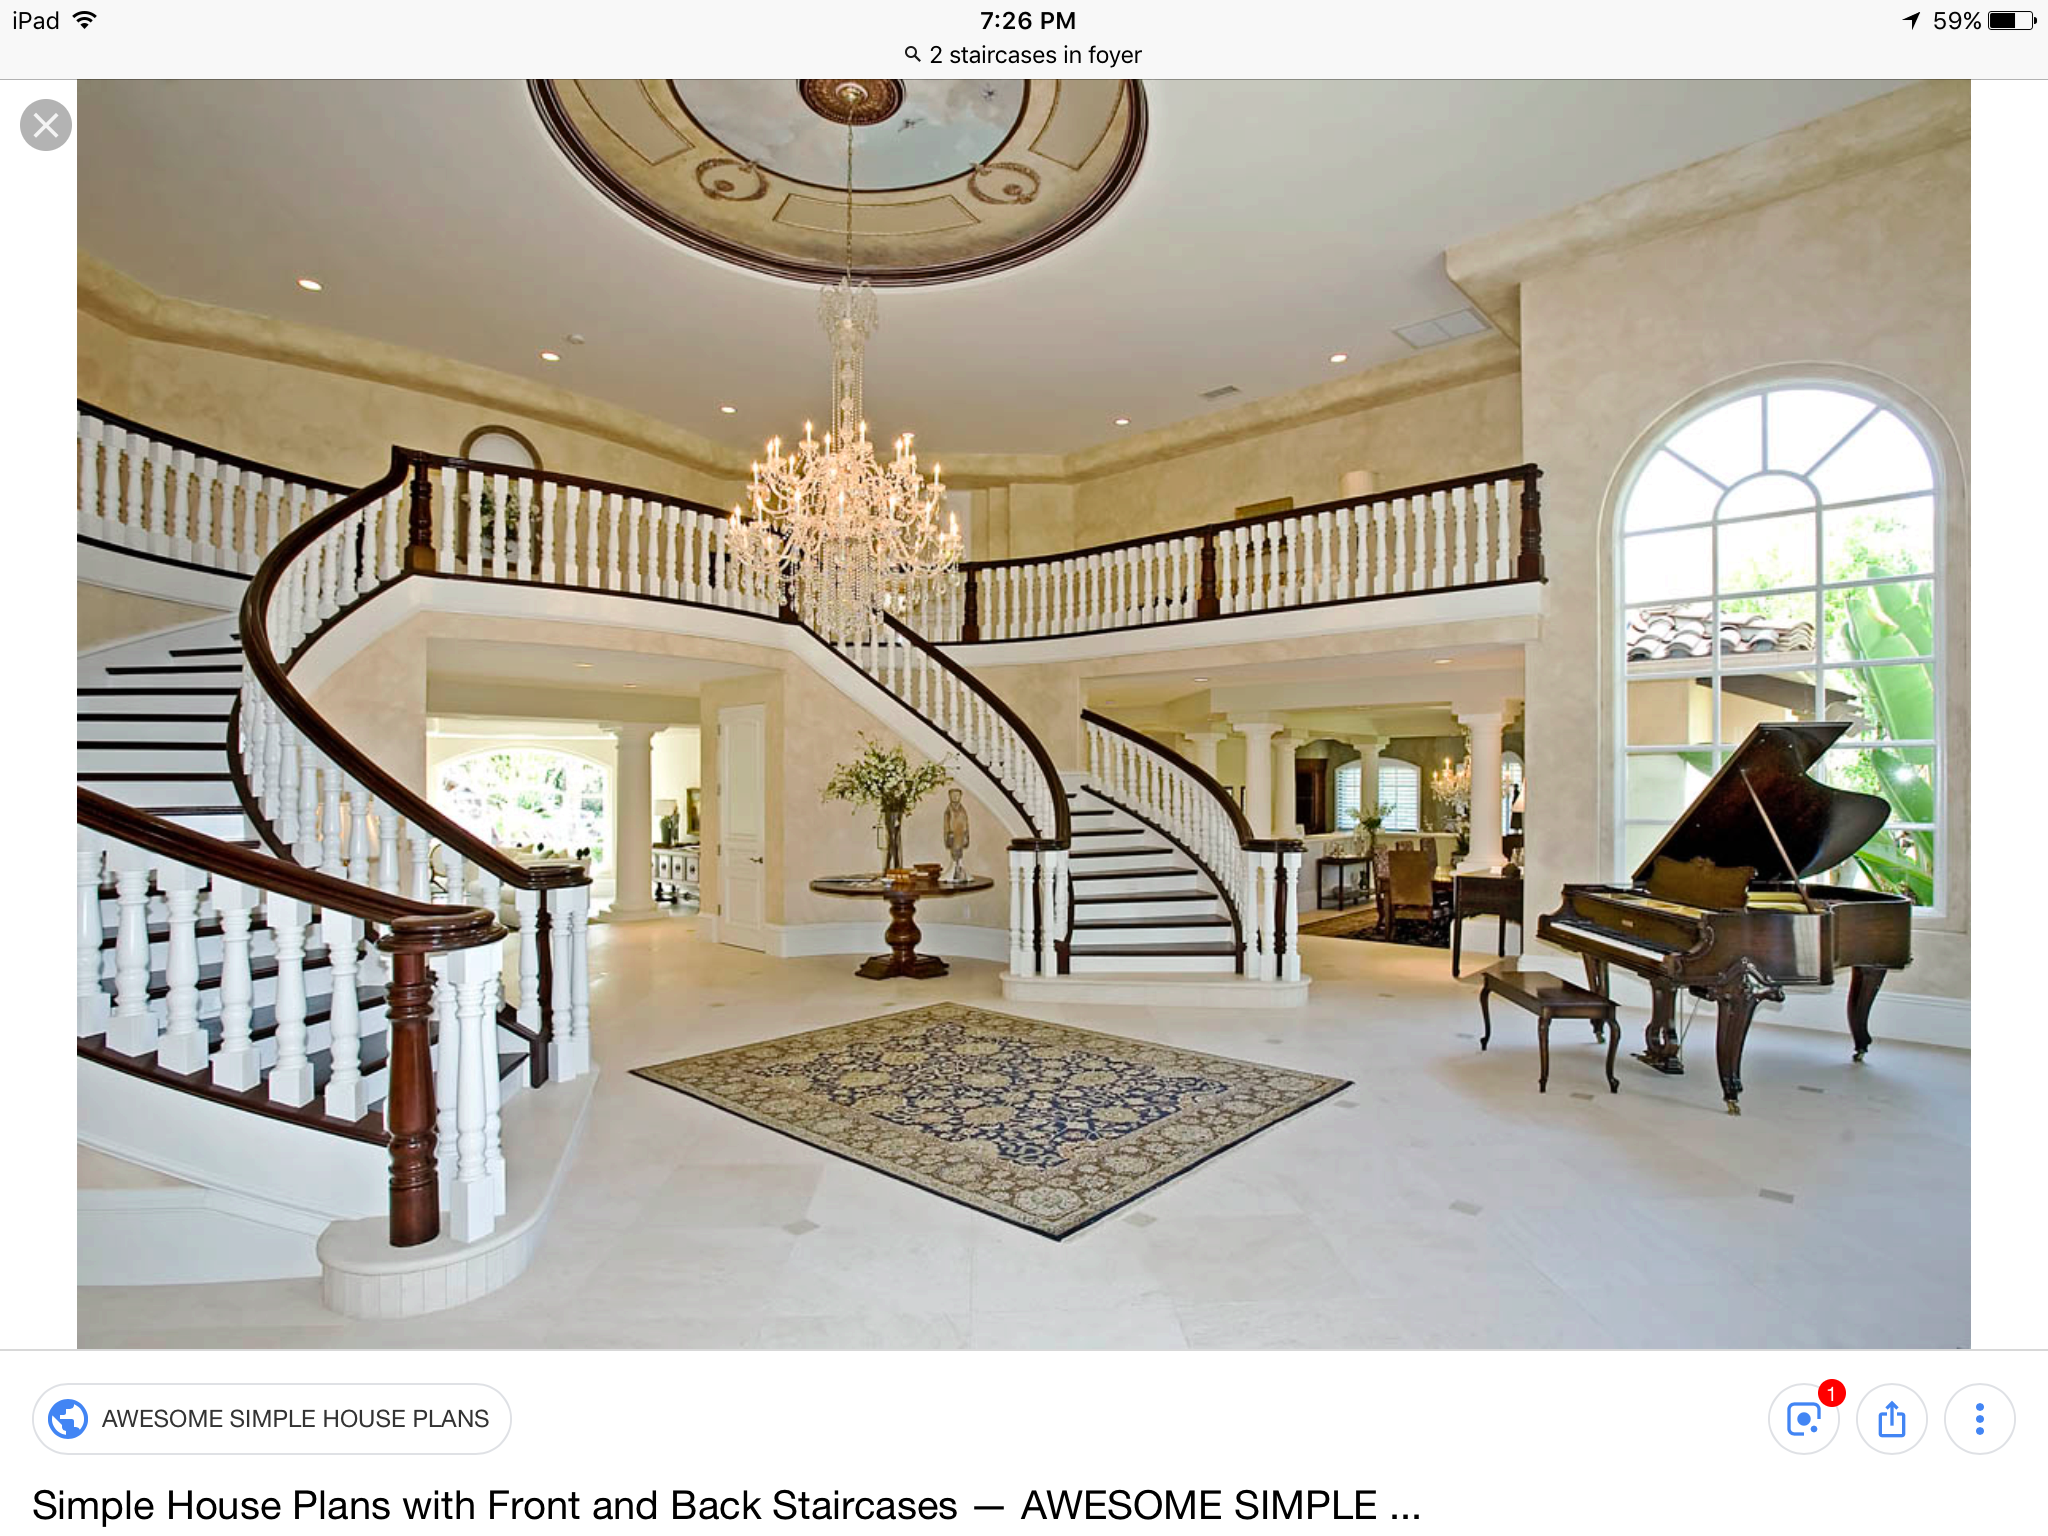 Pin By Mike Henrikson On House Plans Simple House Plans Luxury Staircase House Plans